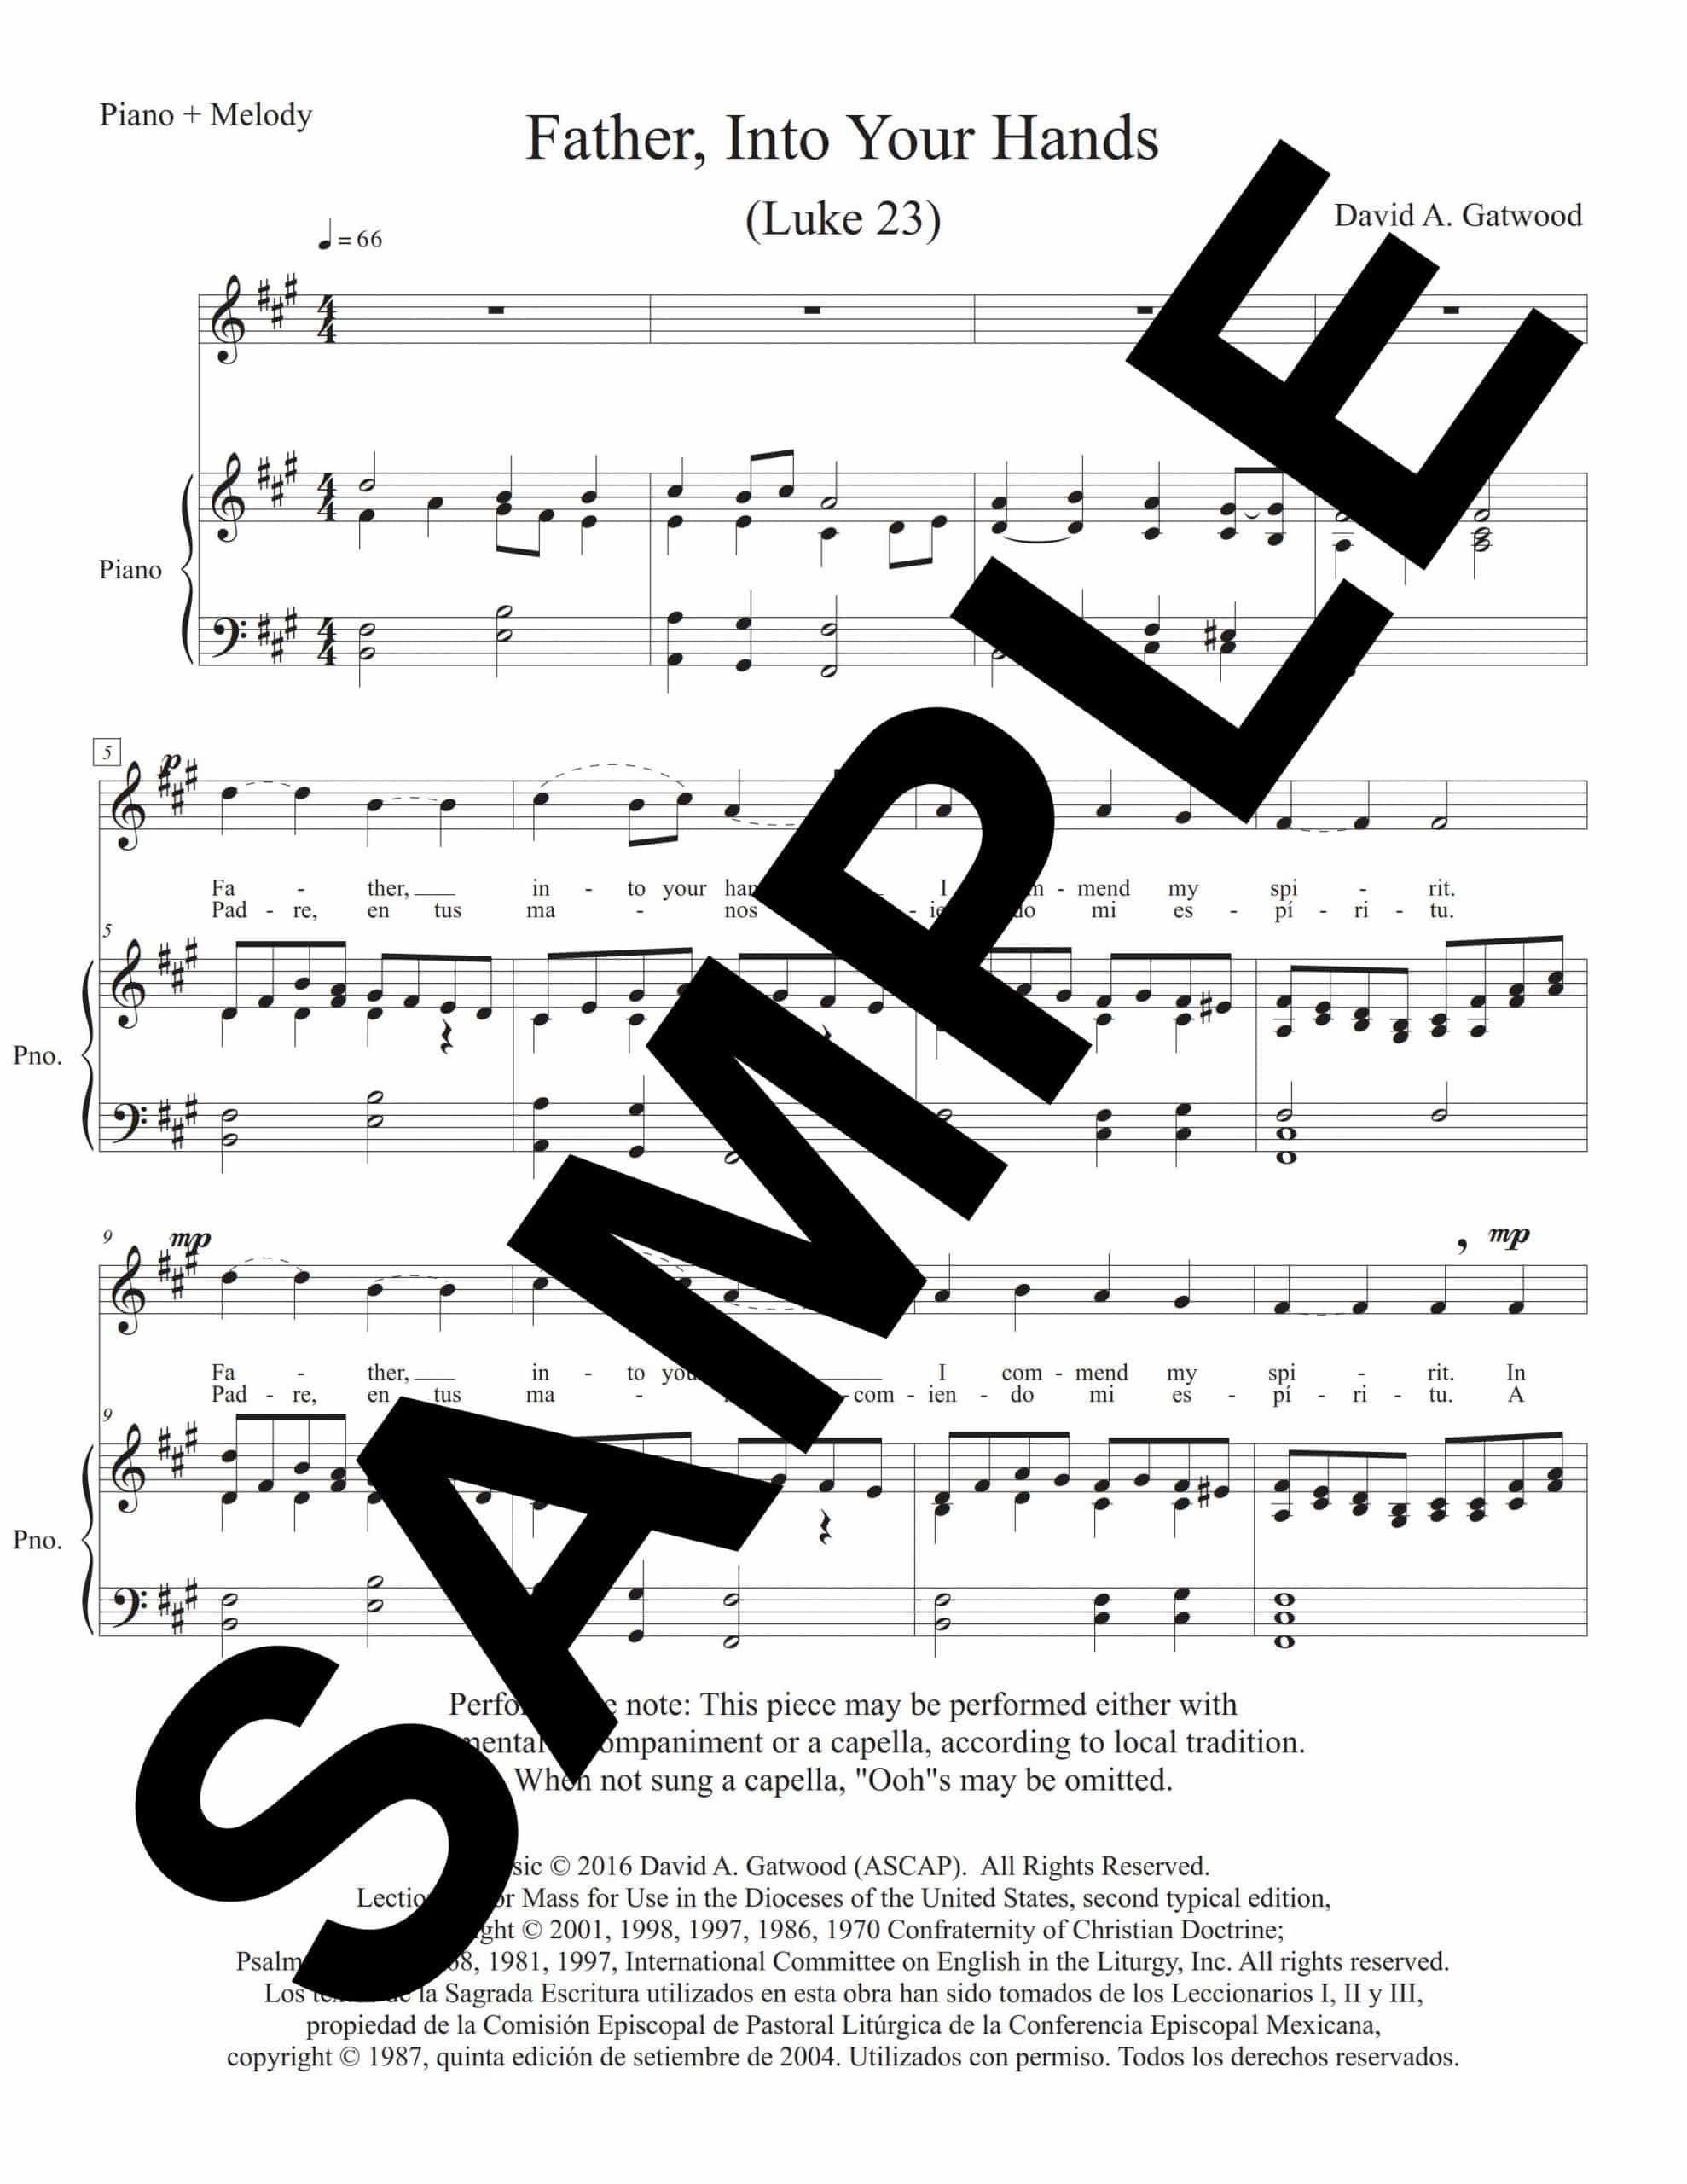 Father Into Your Hands Luke 23 Sample Piano Melody scaled